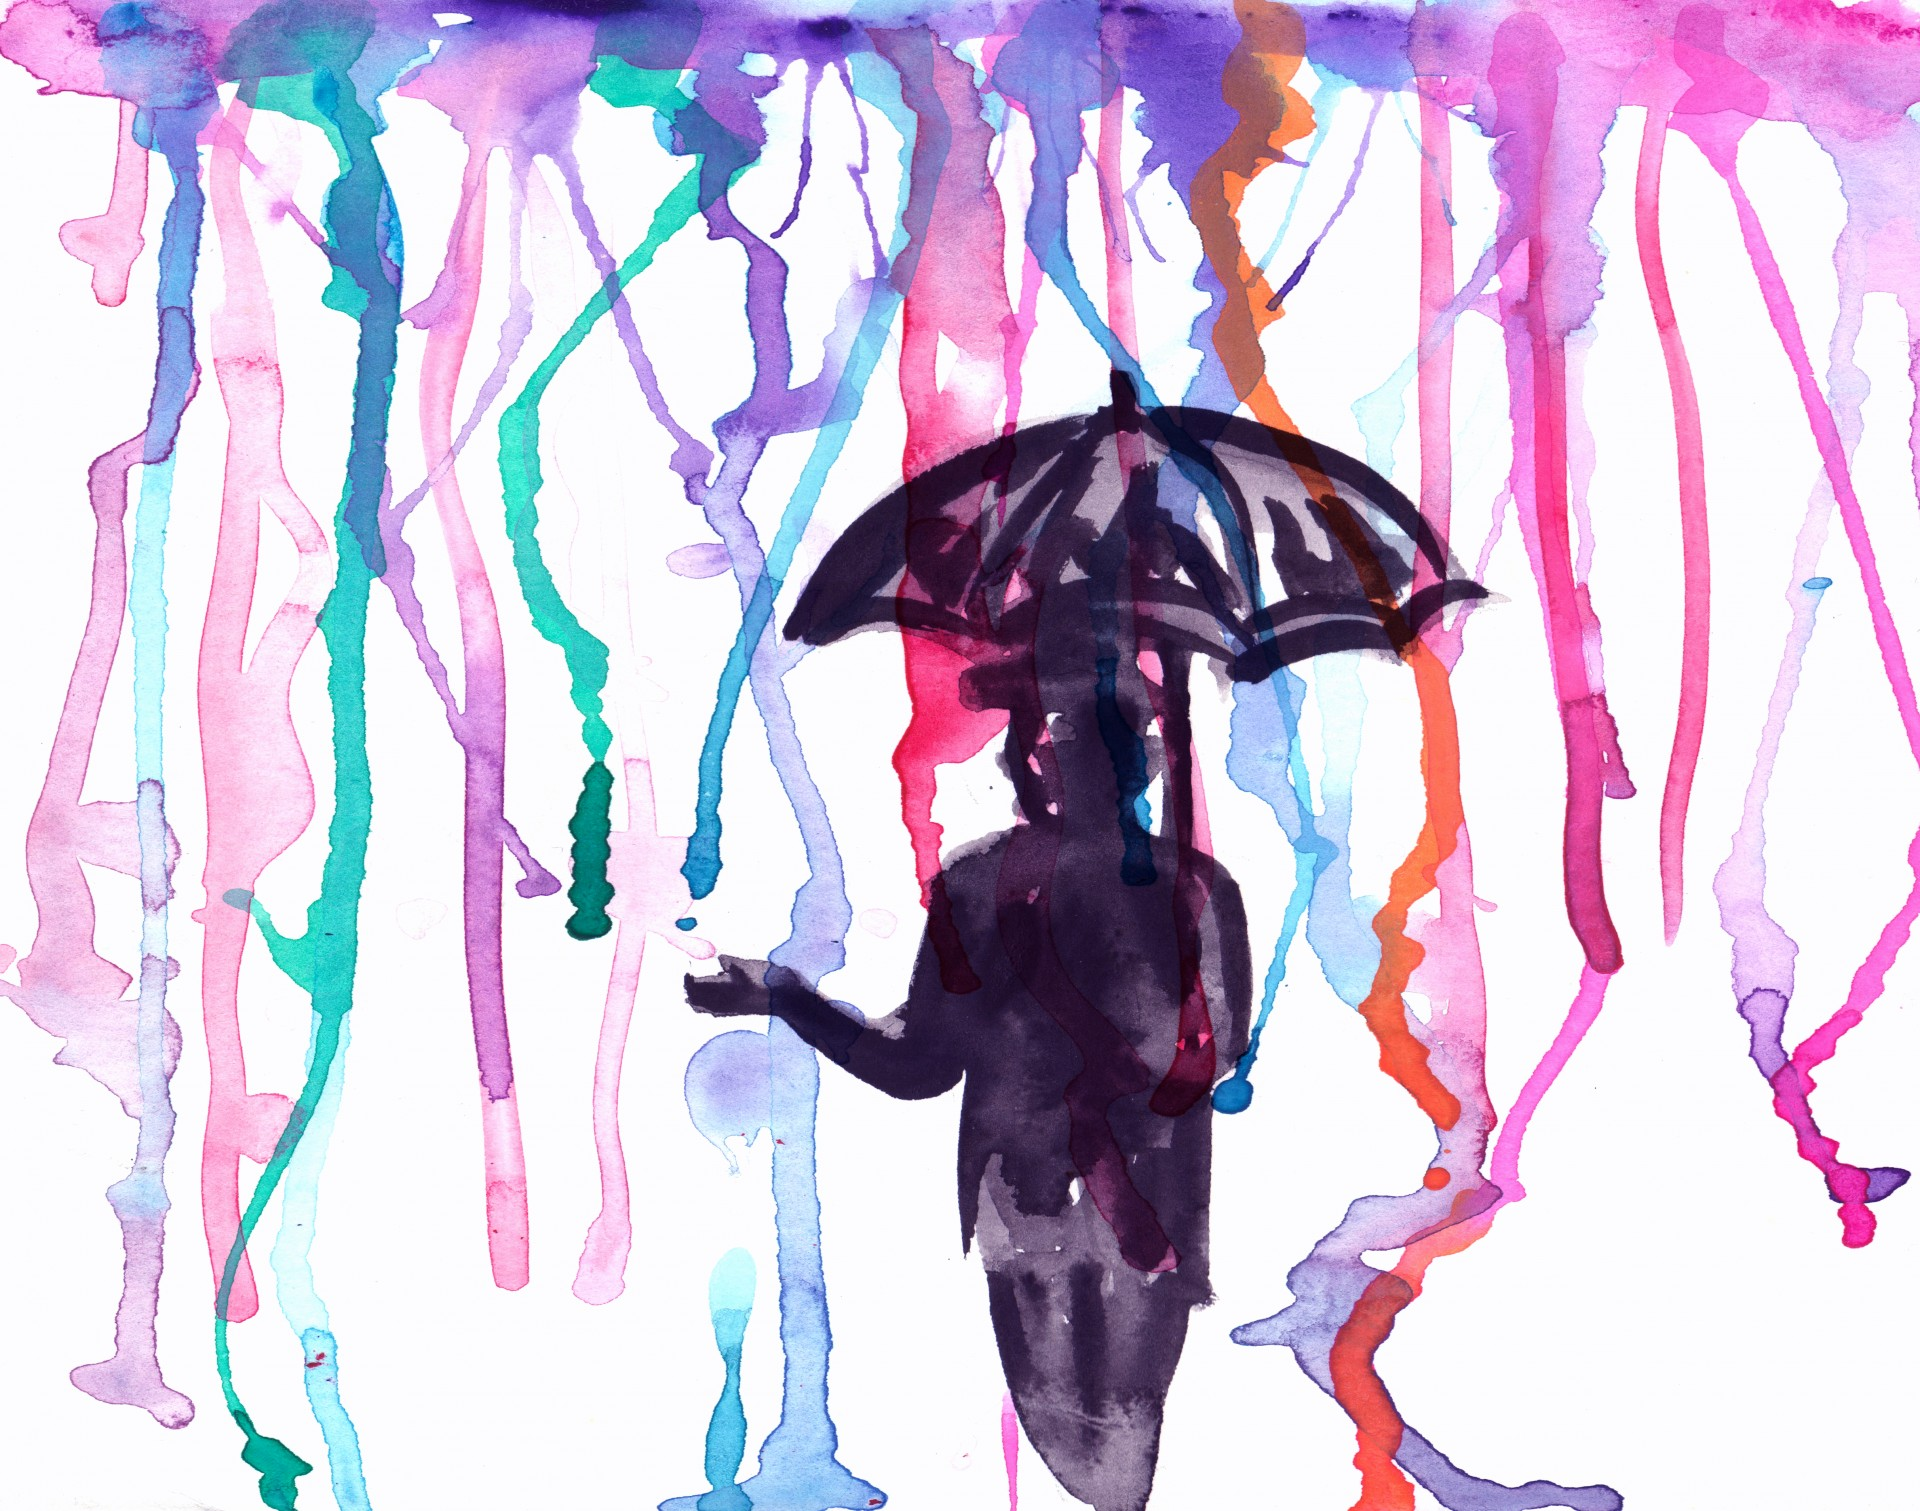 watercolor-man-standing-in-rain.jpg